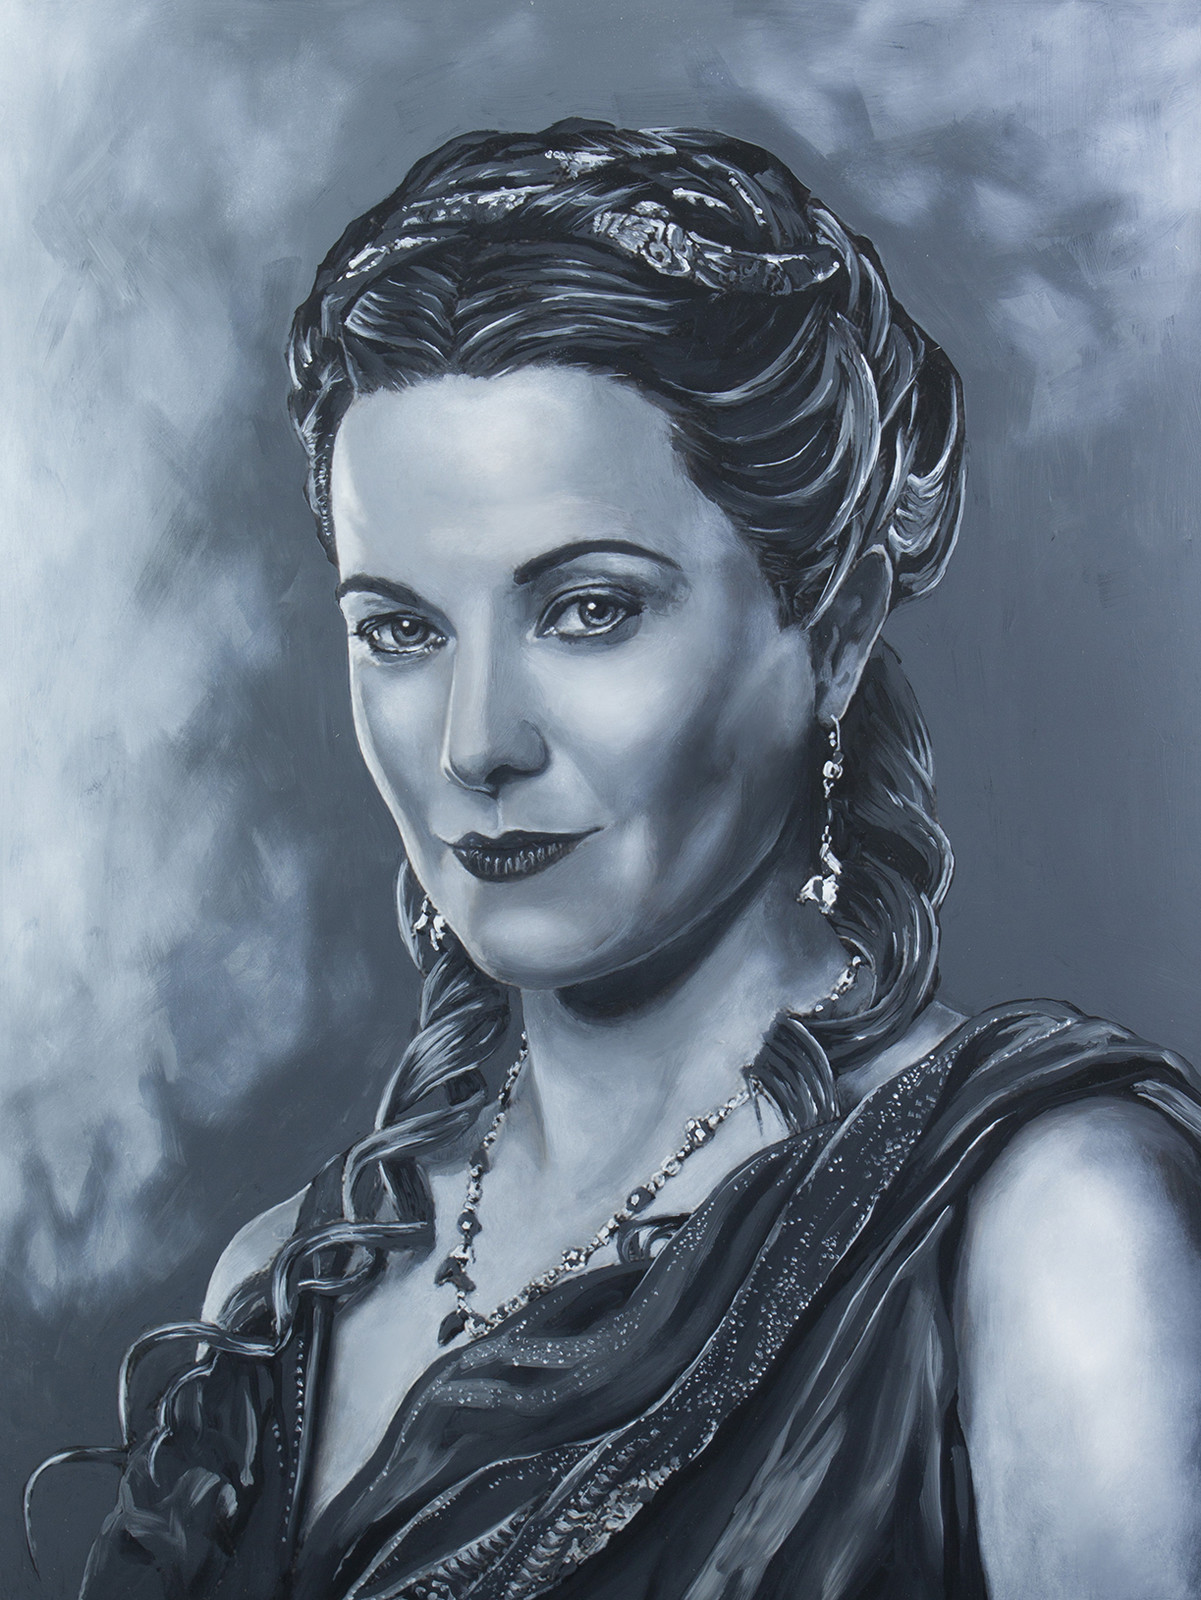 Lucretia - Lucy Lawless Spartacus Series - Acrylic on board. 16x20